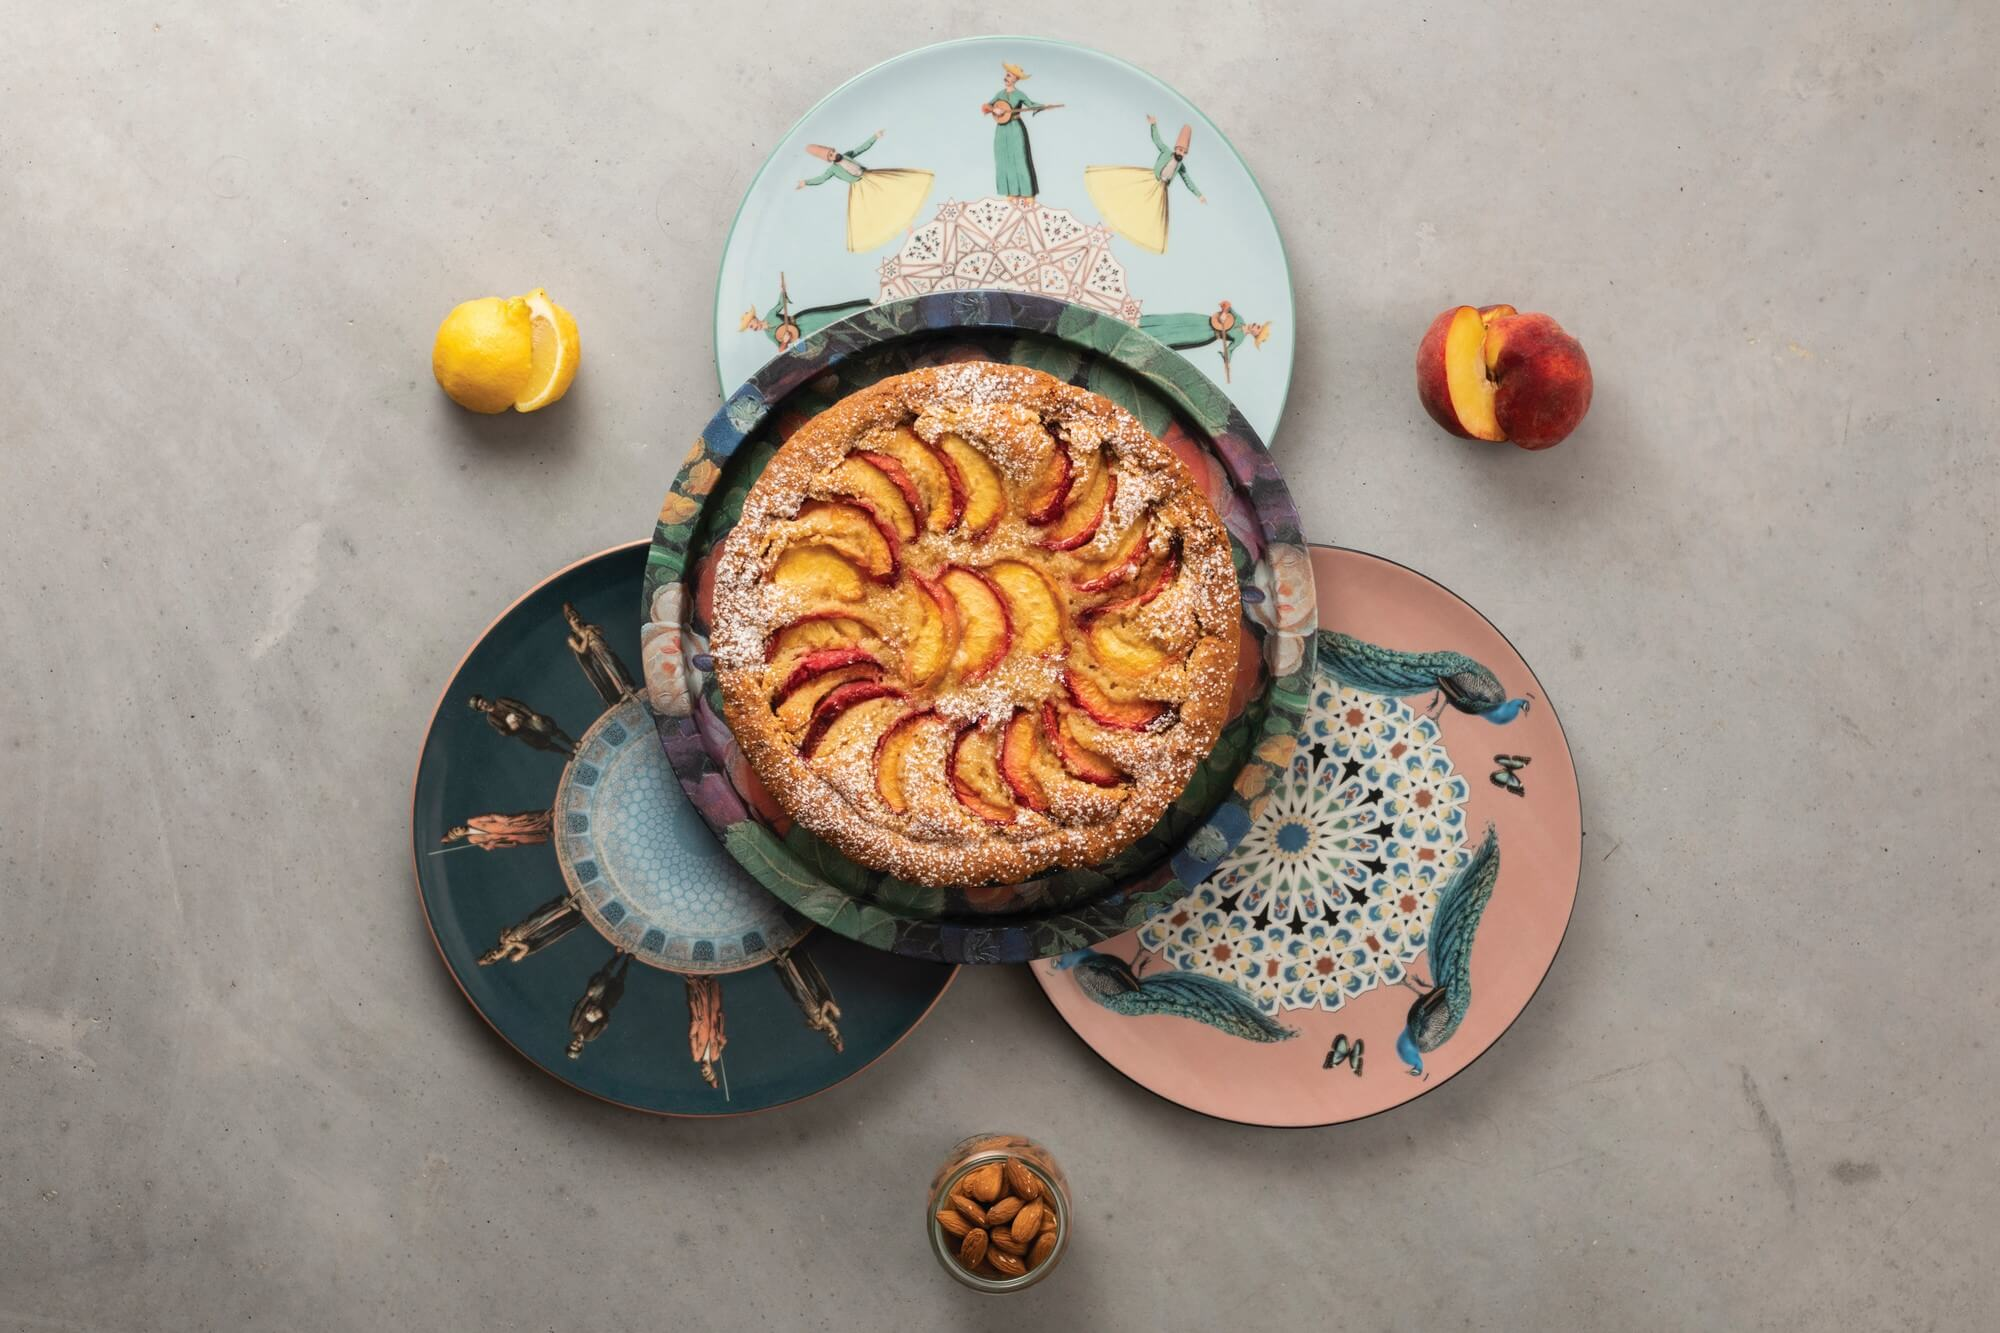 Frangipane Tart with Peaches